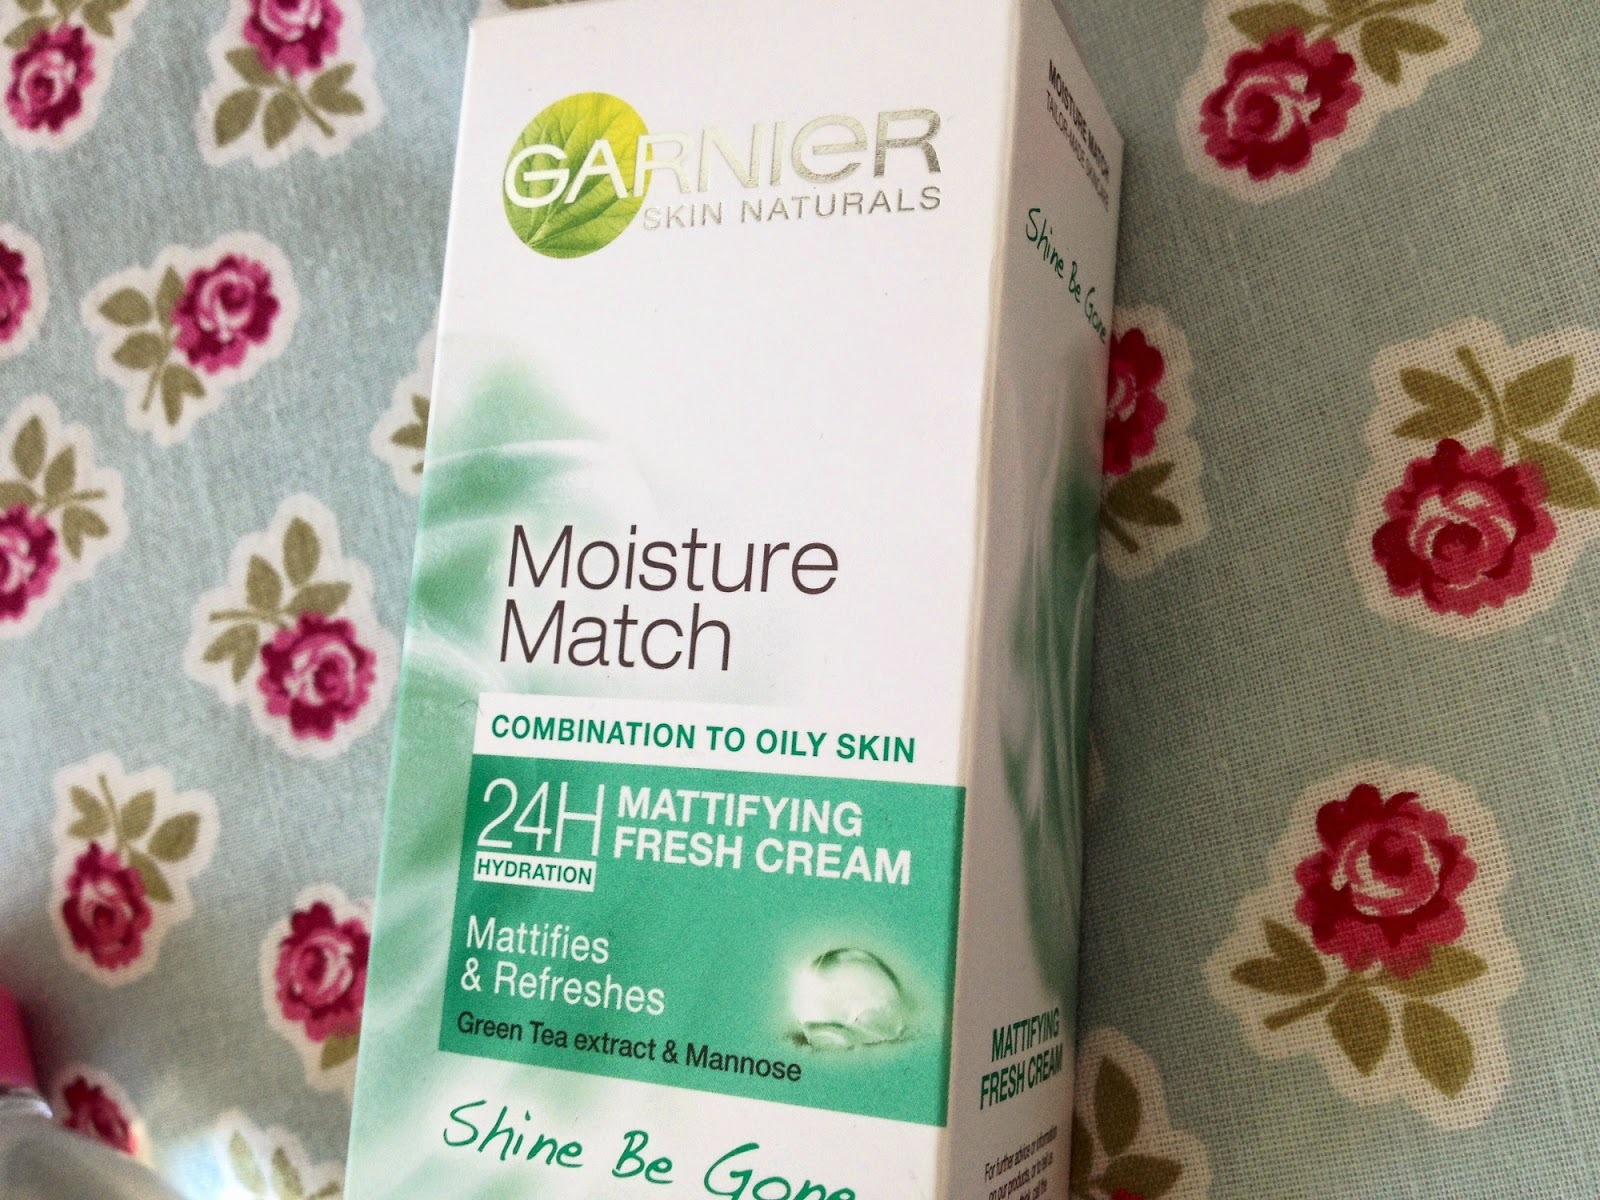 A close up of the garnier moisture match